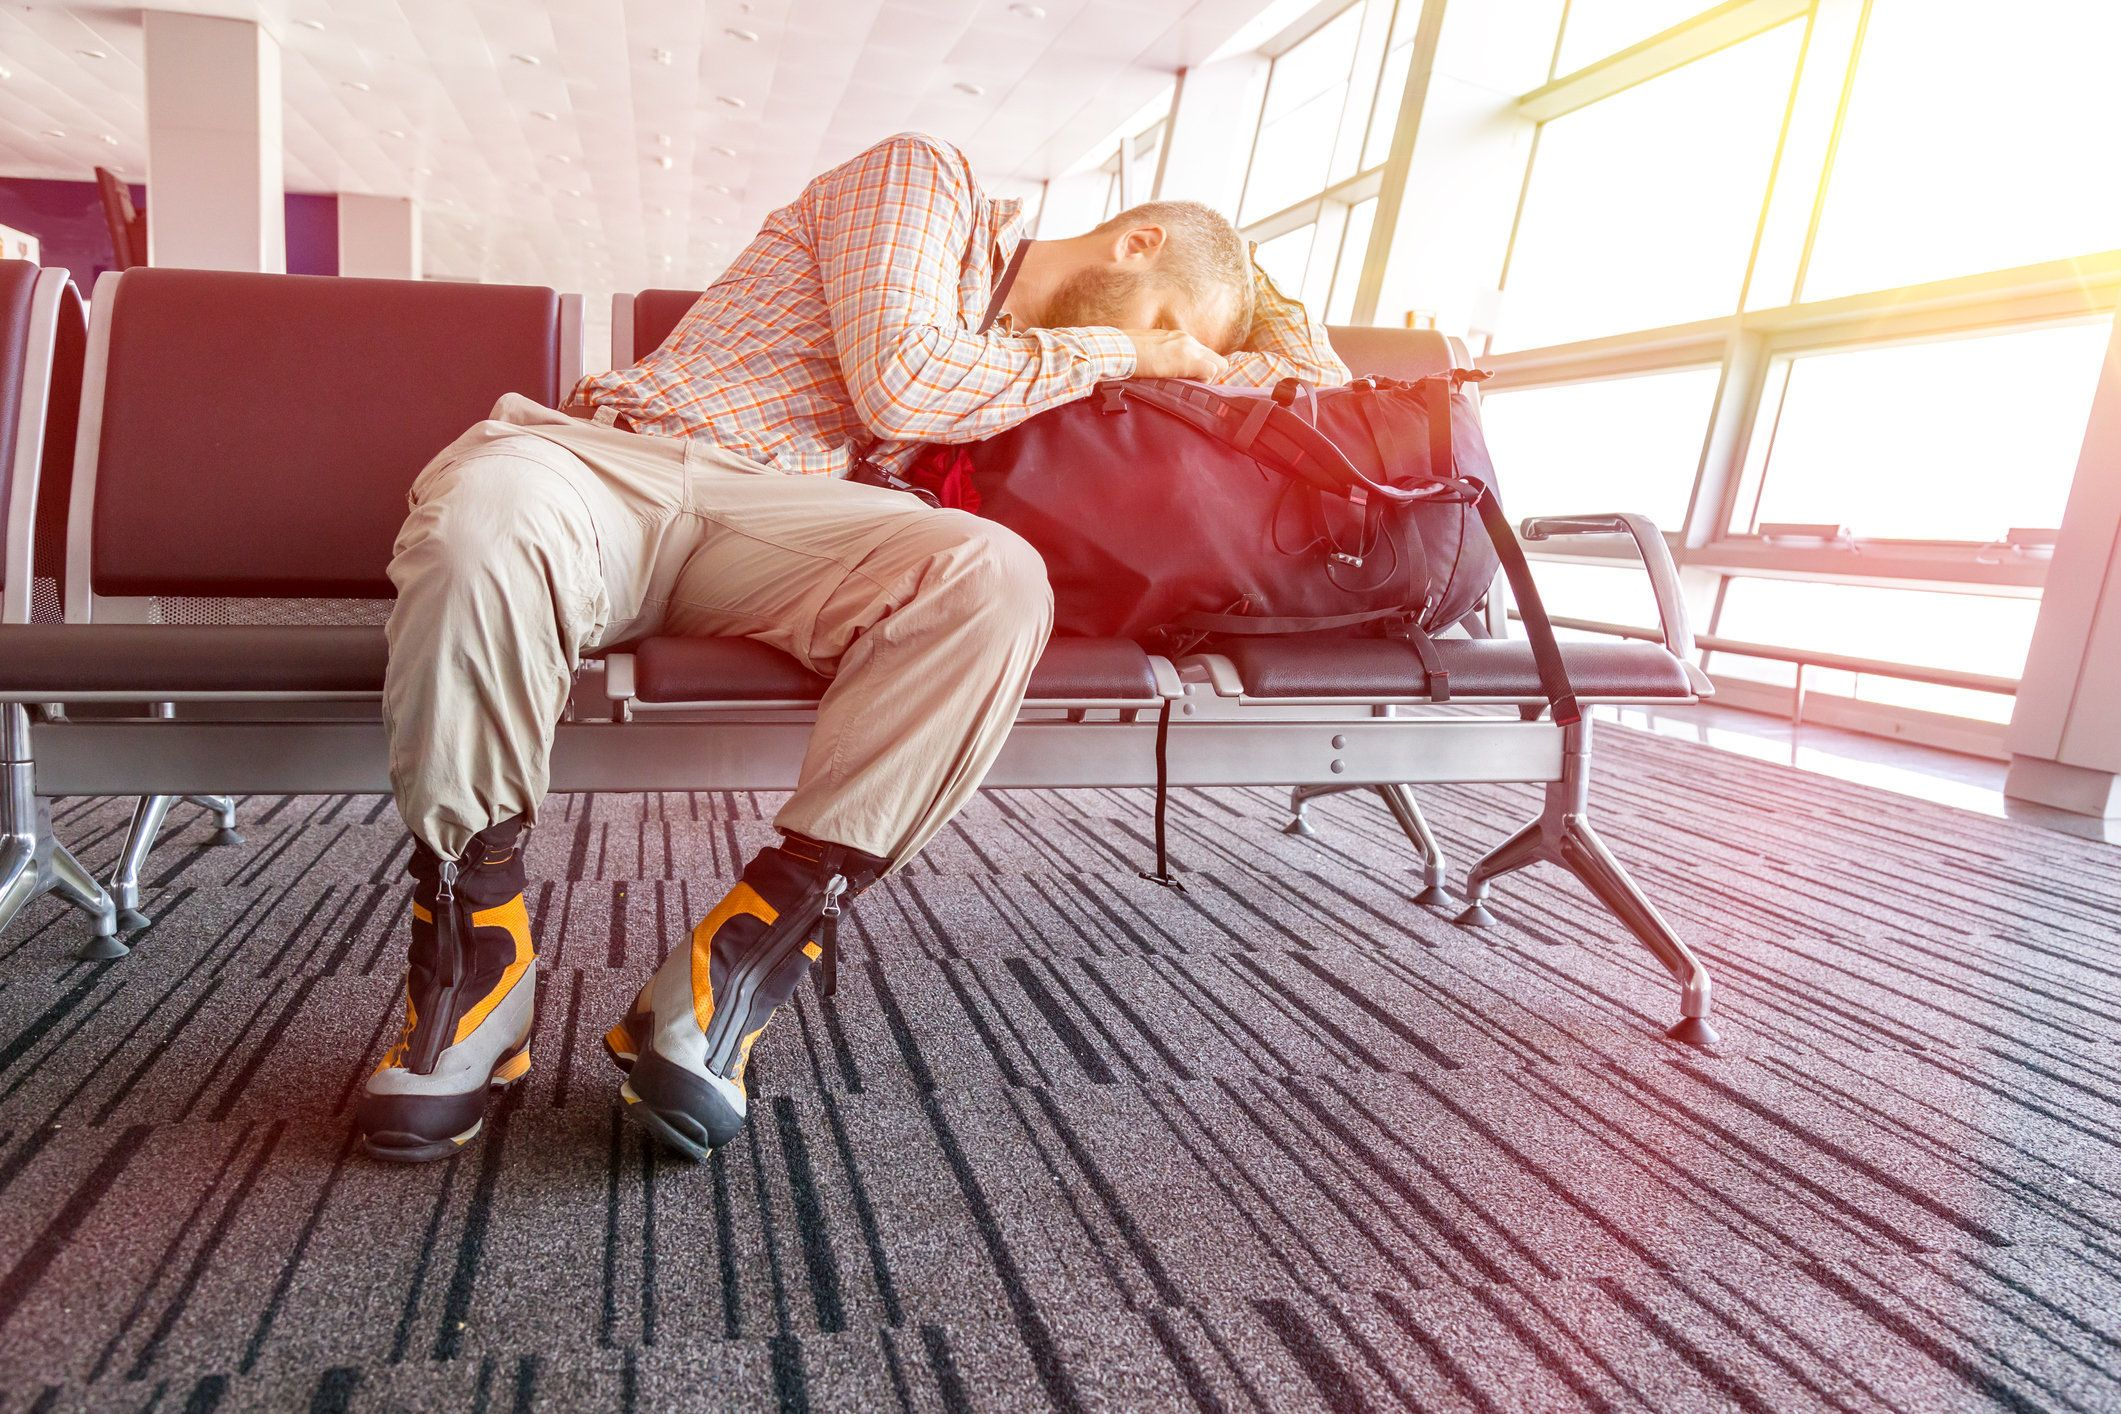 Man sleeping on his travel luggage inside airport terminal with back light bright sun coming throw window